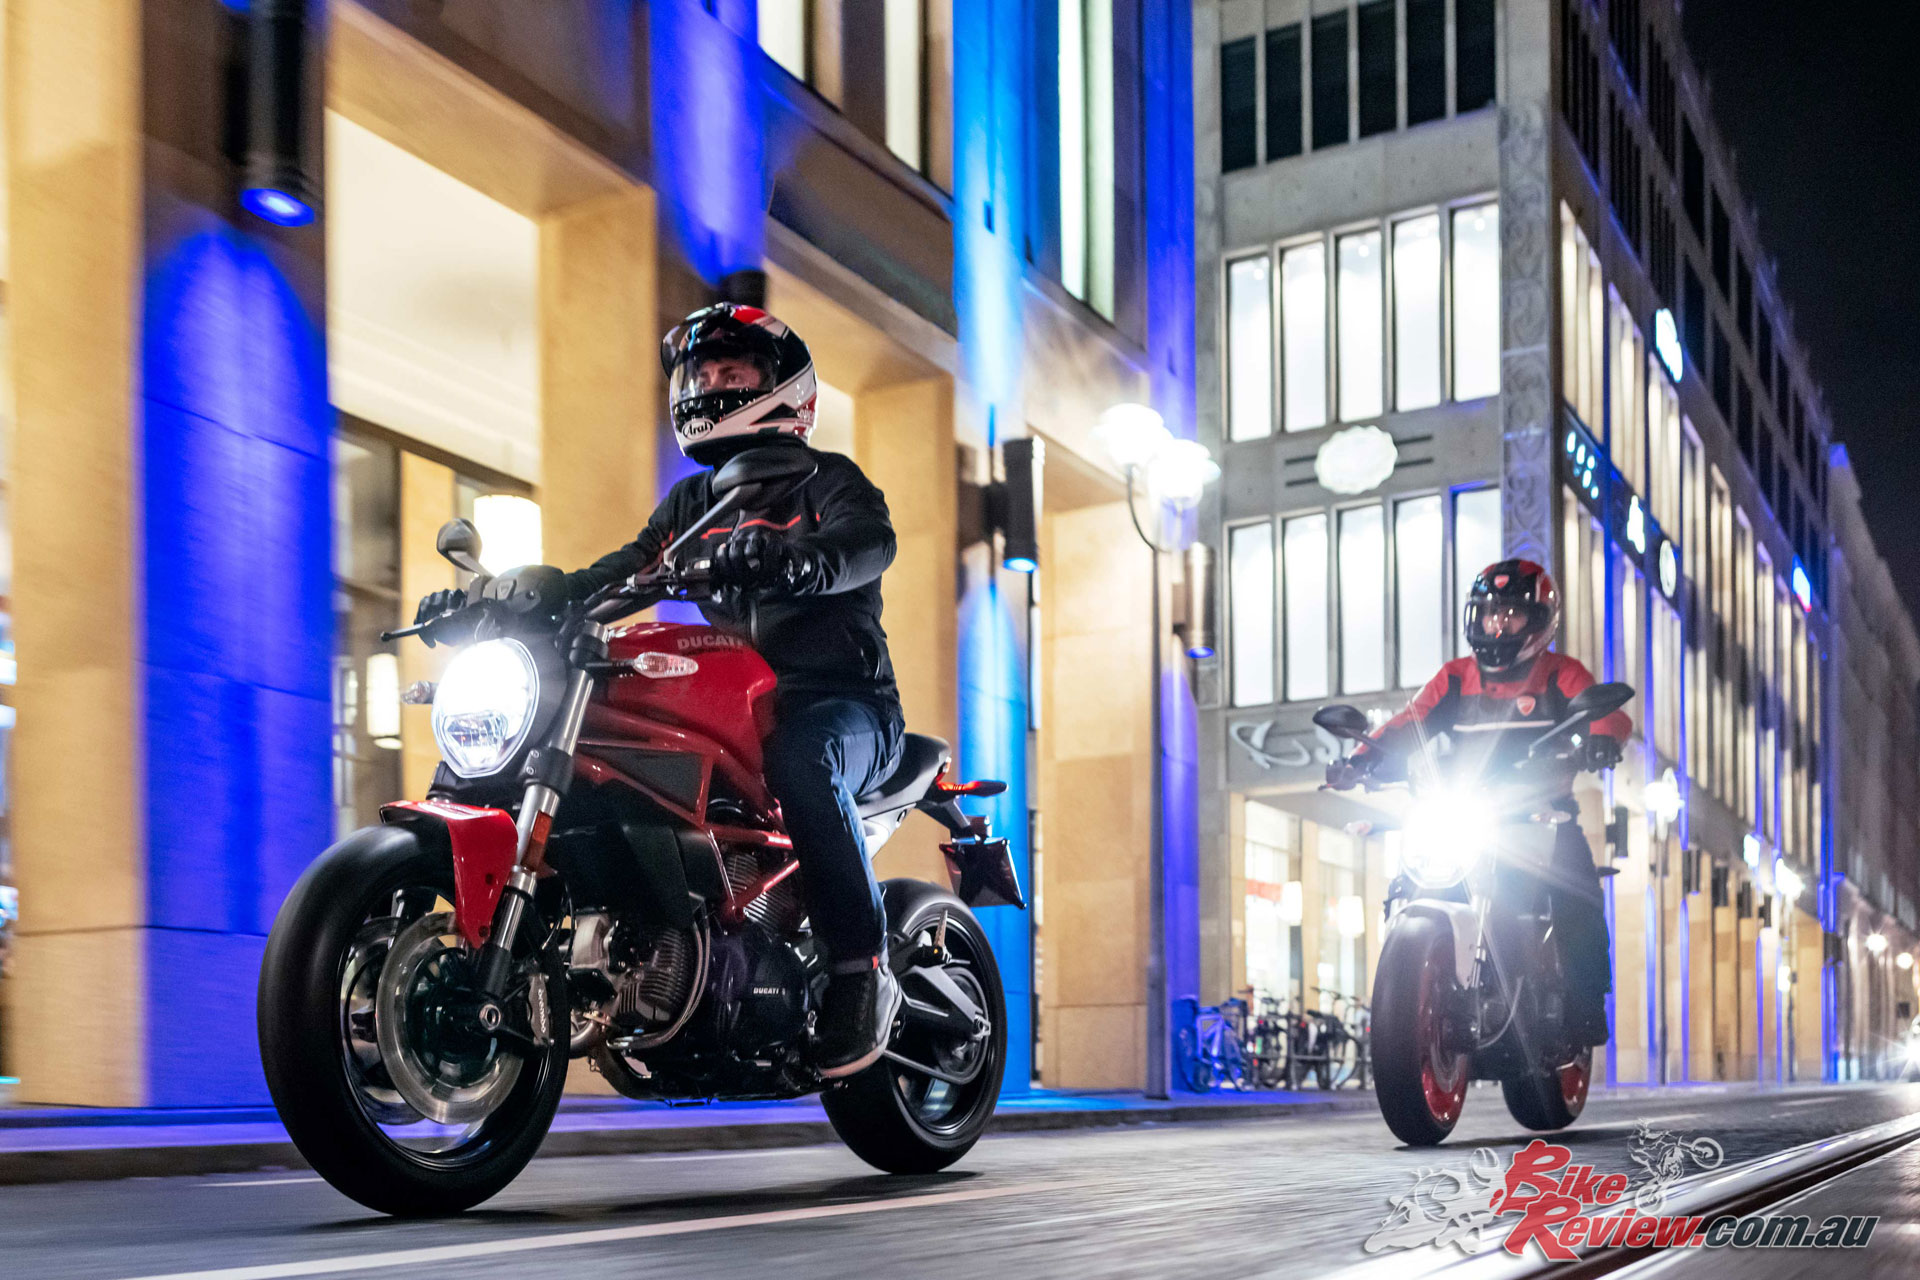 The 2018 Ducati Monster 659 is expected to arrive in dealers in October for $12,490 plus On Road Costs